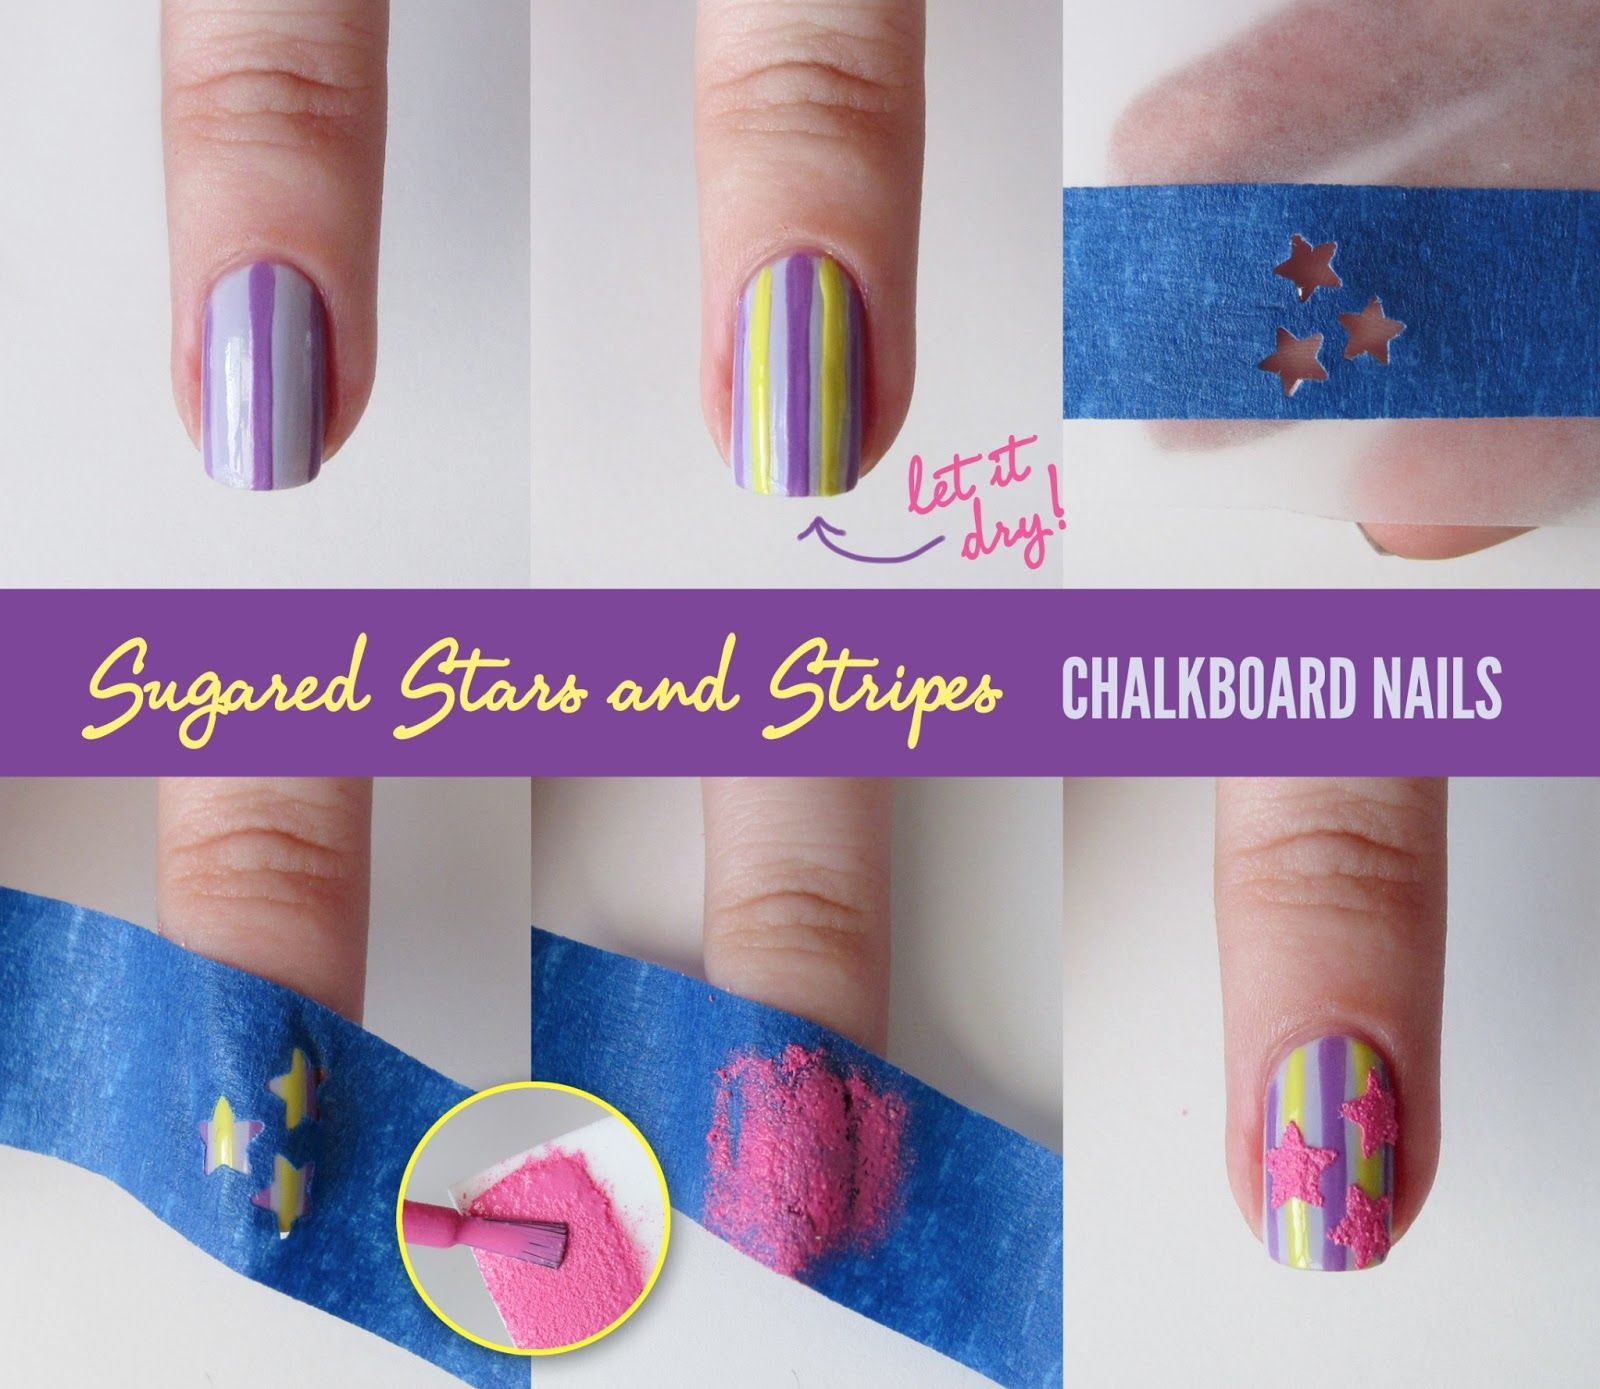 Chalkboard Nails Sugared Stars And Stripes Tutorial